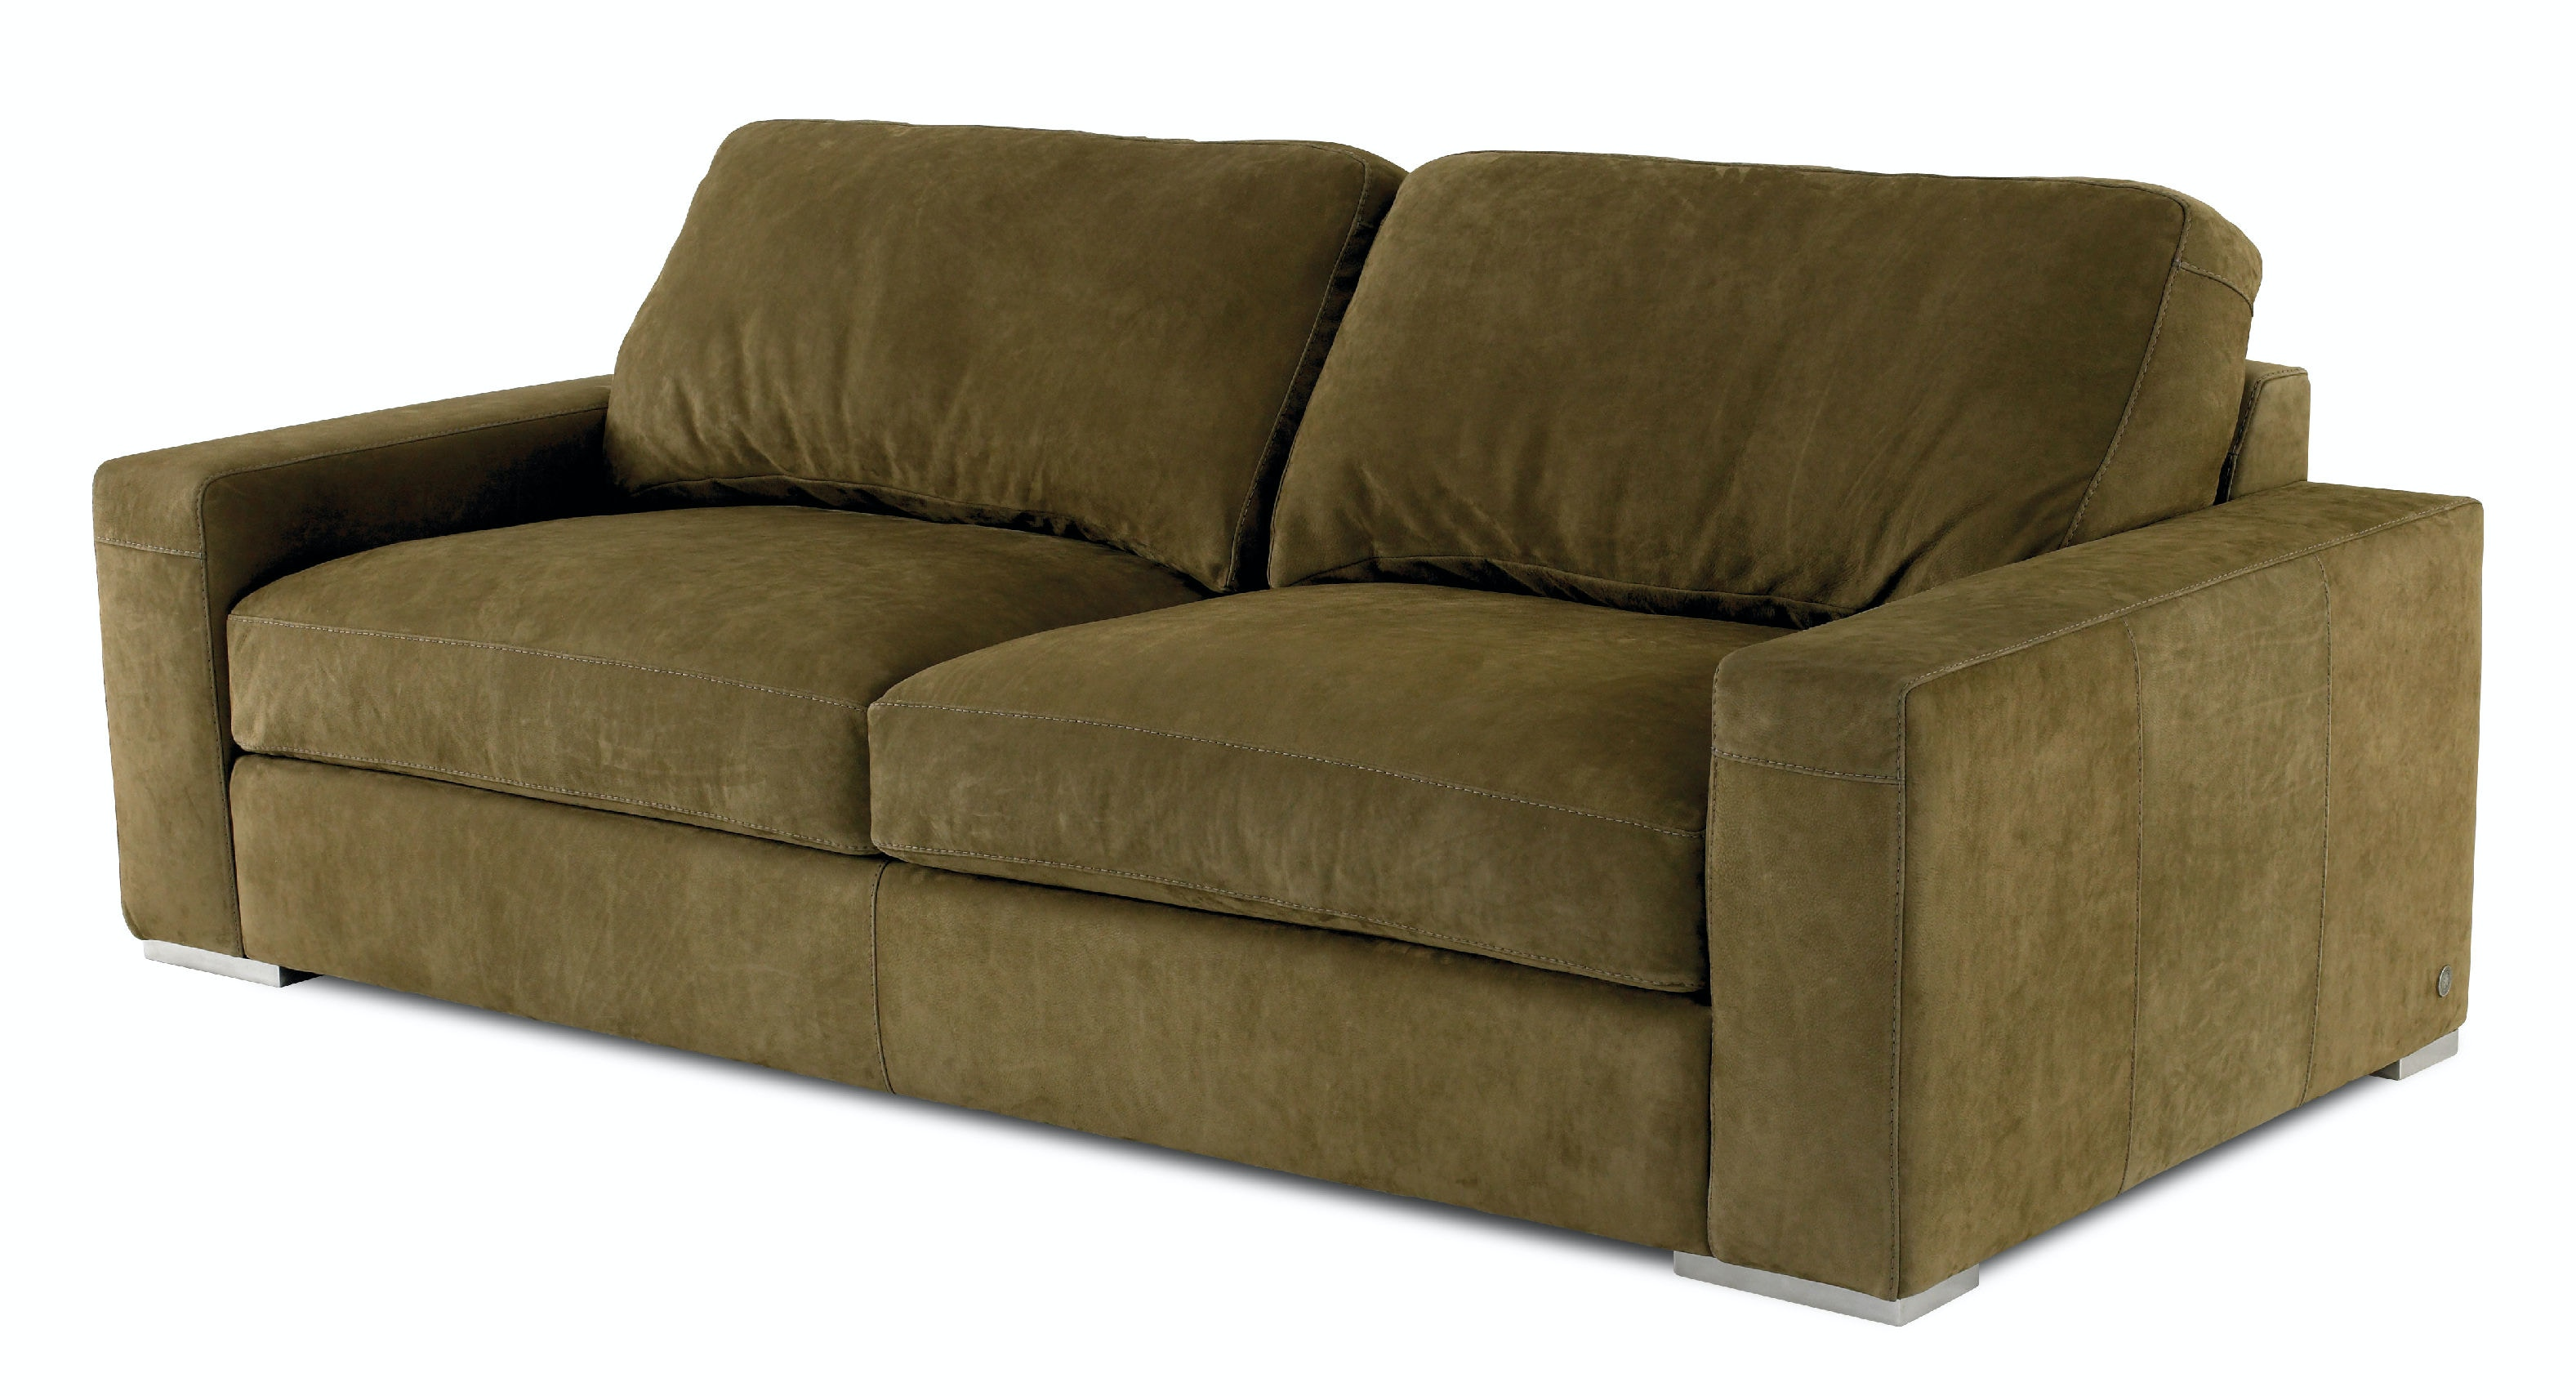 leather sectional sofa sacramento sam moore recliner american living room two cushion wst so2 st